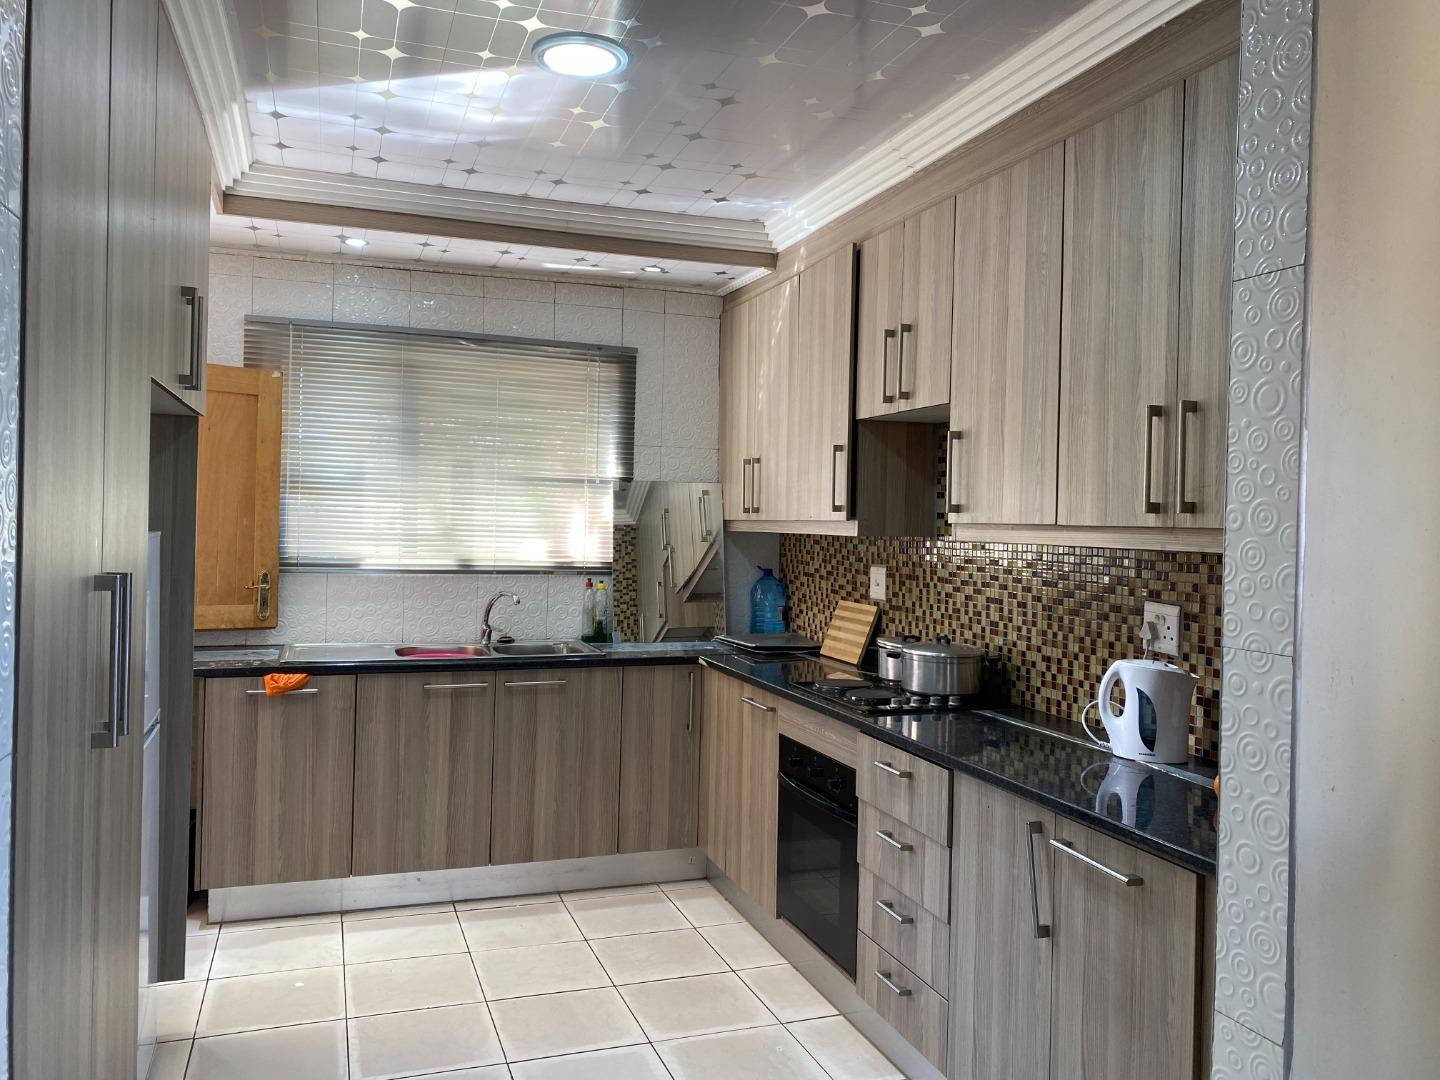 2 Bedroom House For Sale in Chroompark